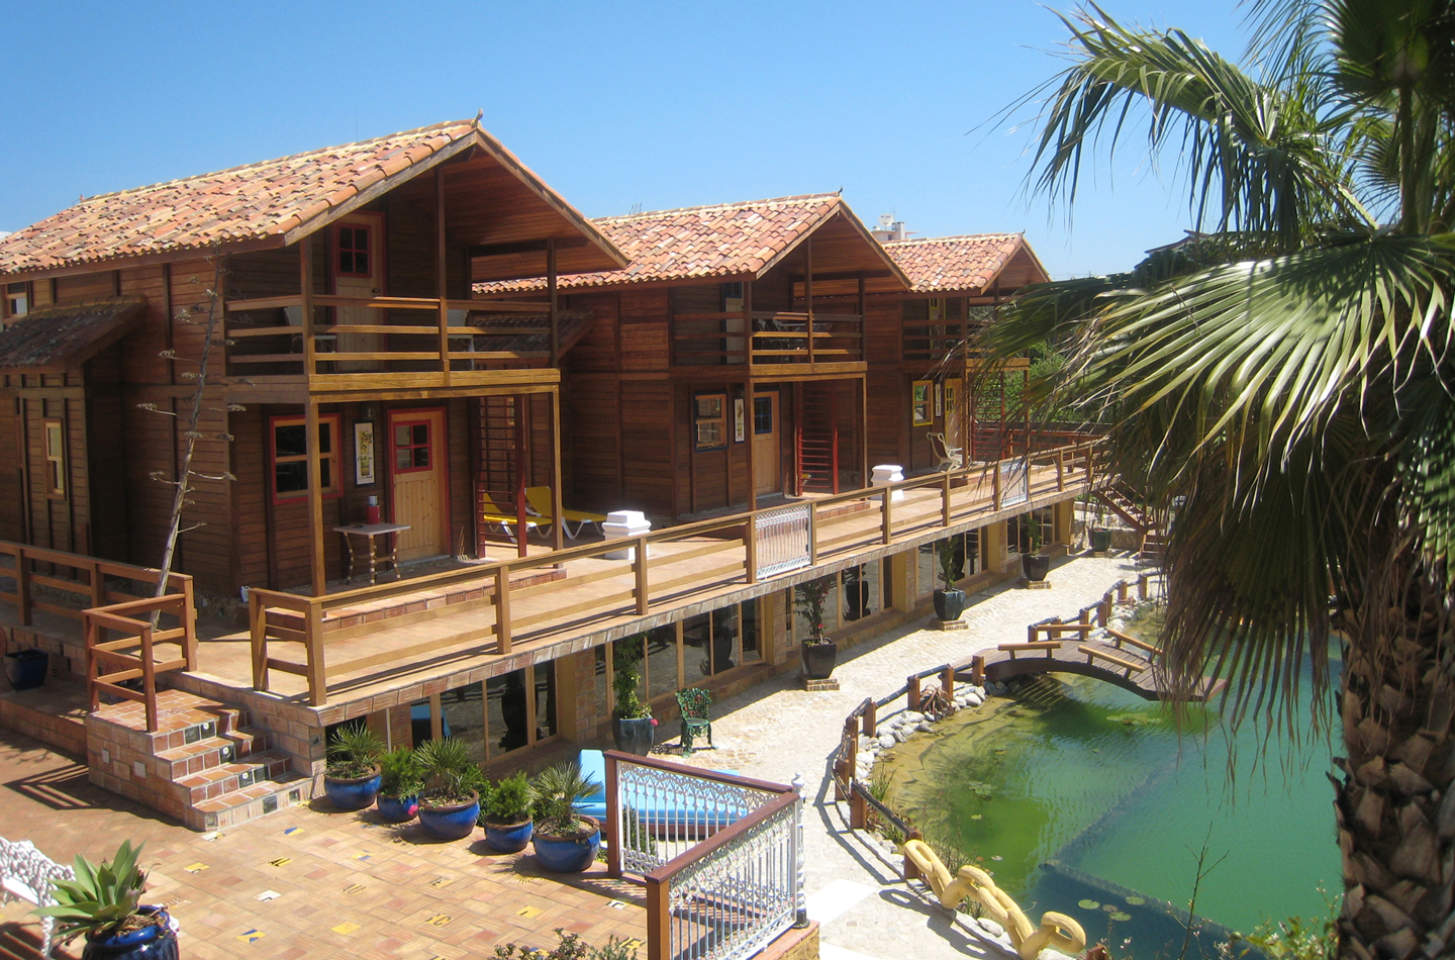 Surf Blog - Top 8 Family surfing holiday options in Portugal